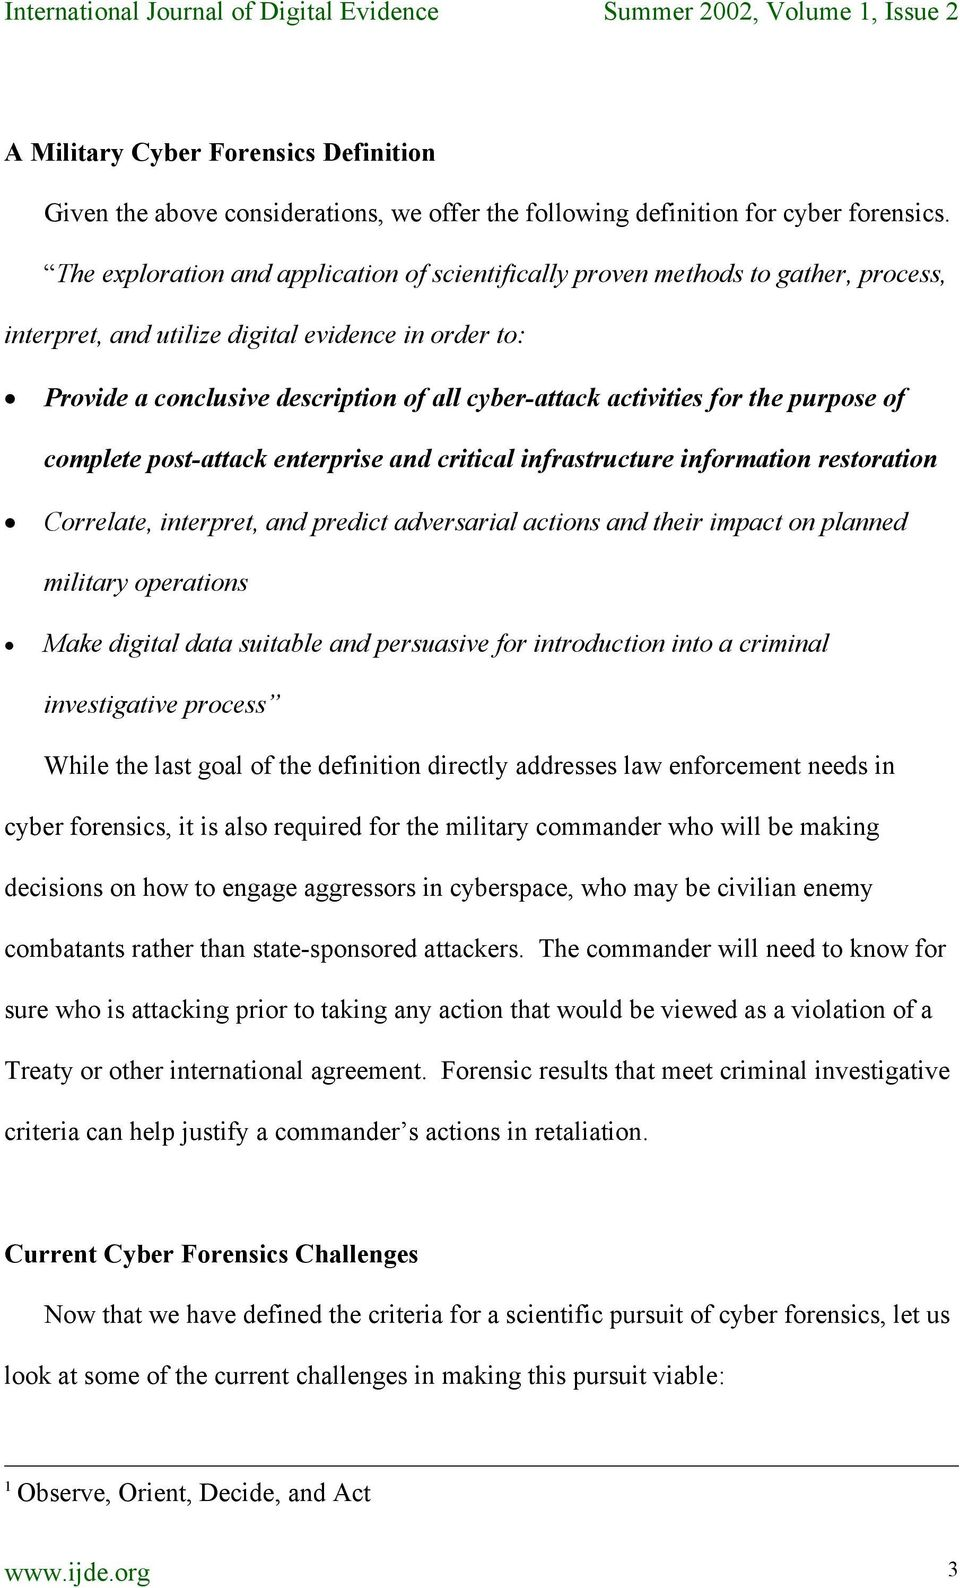 activities for the purpose of complete post-attack enterprise and critical infrastructure information restoration Correlate, interpret, and predict adversarial actions and their impact on planned